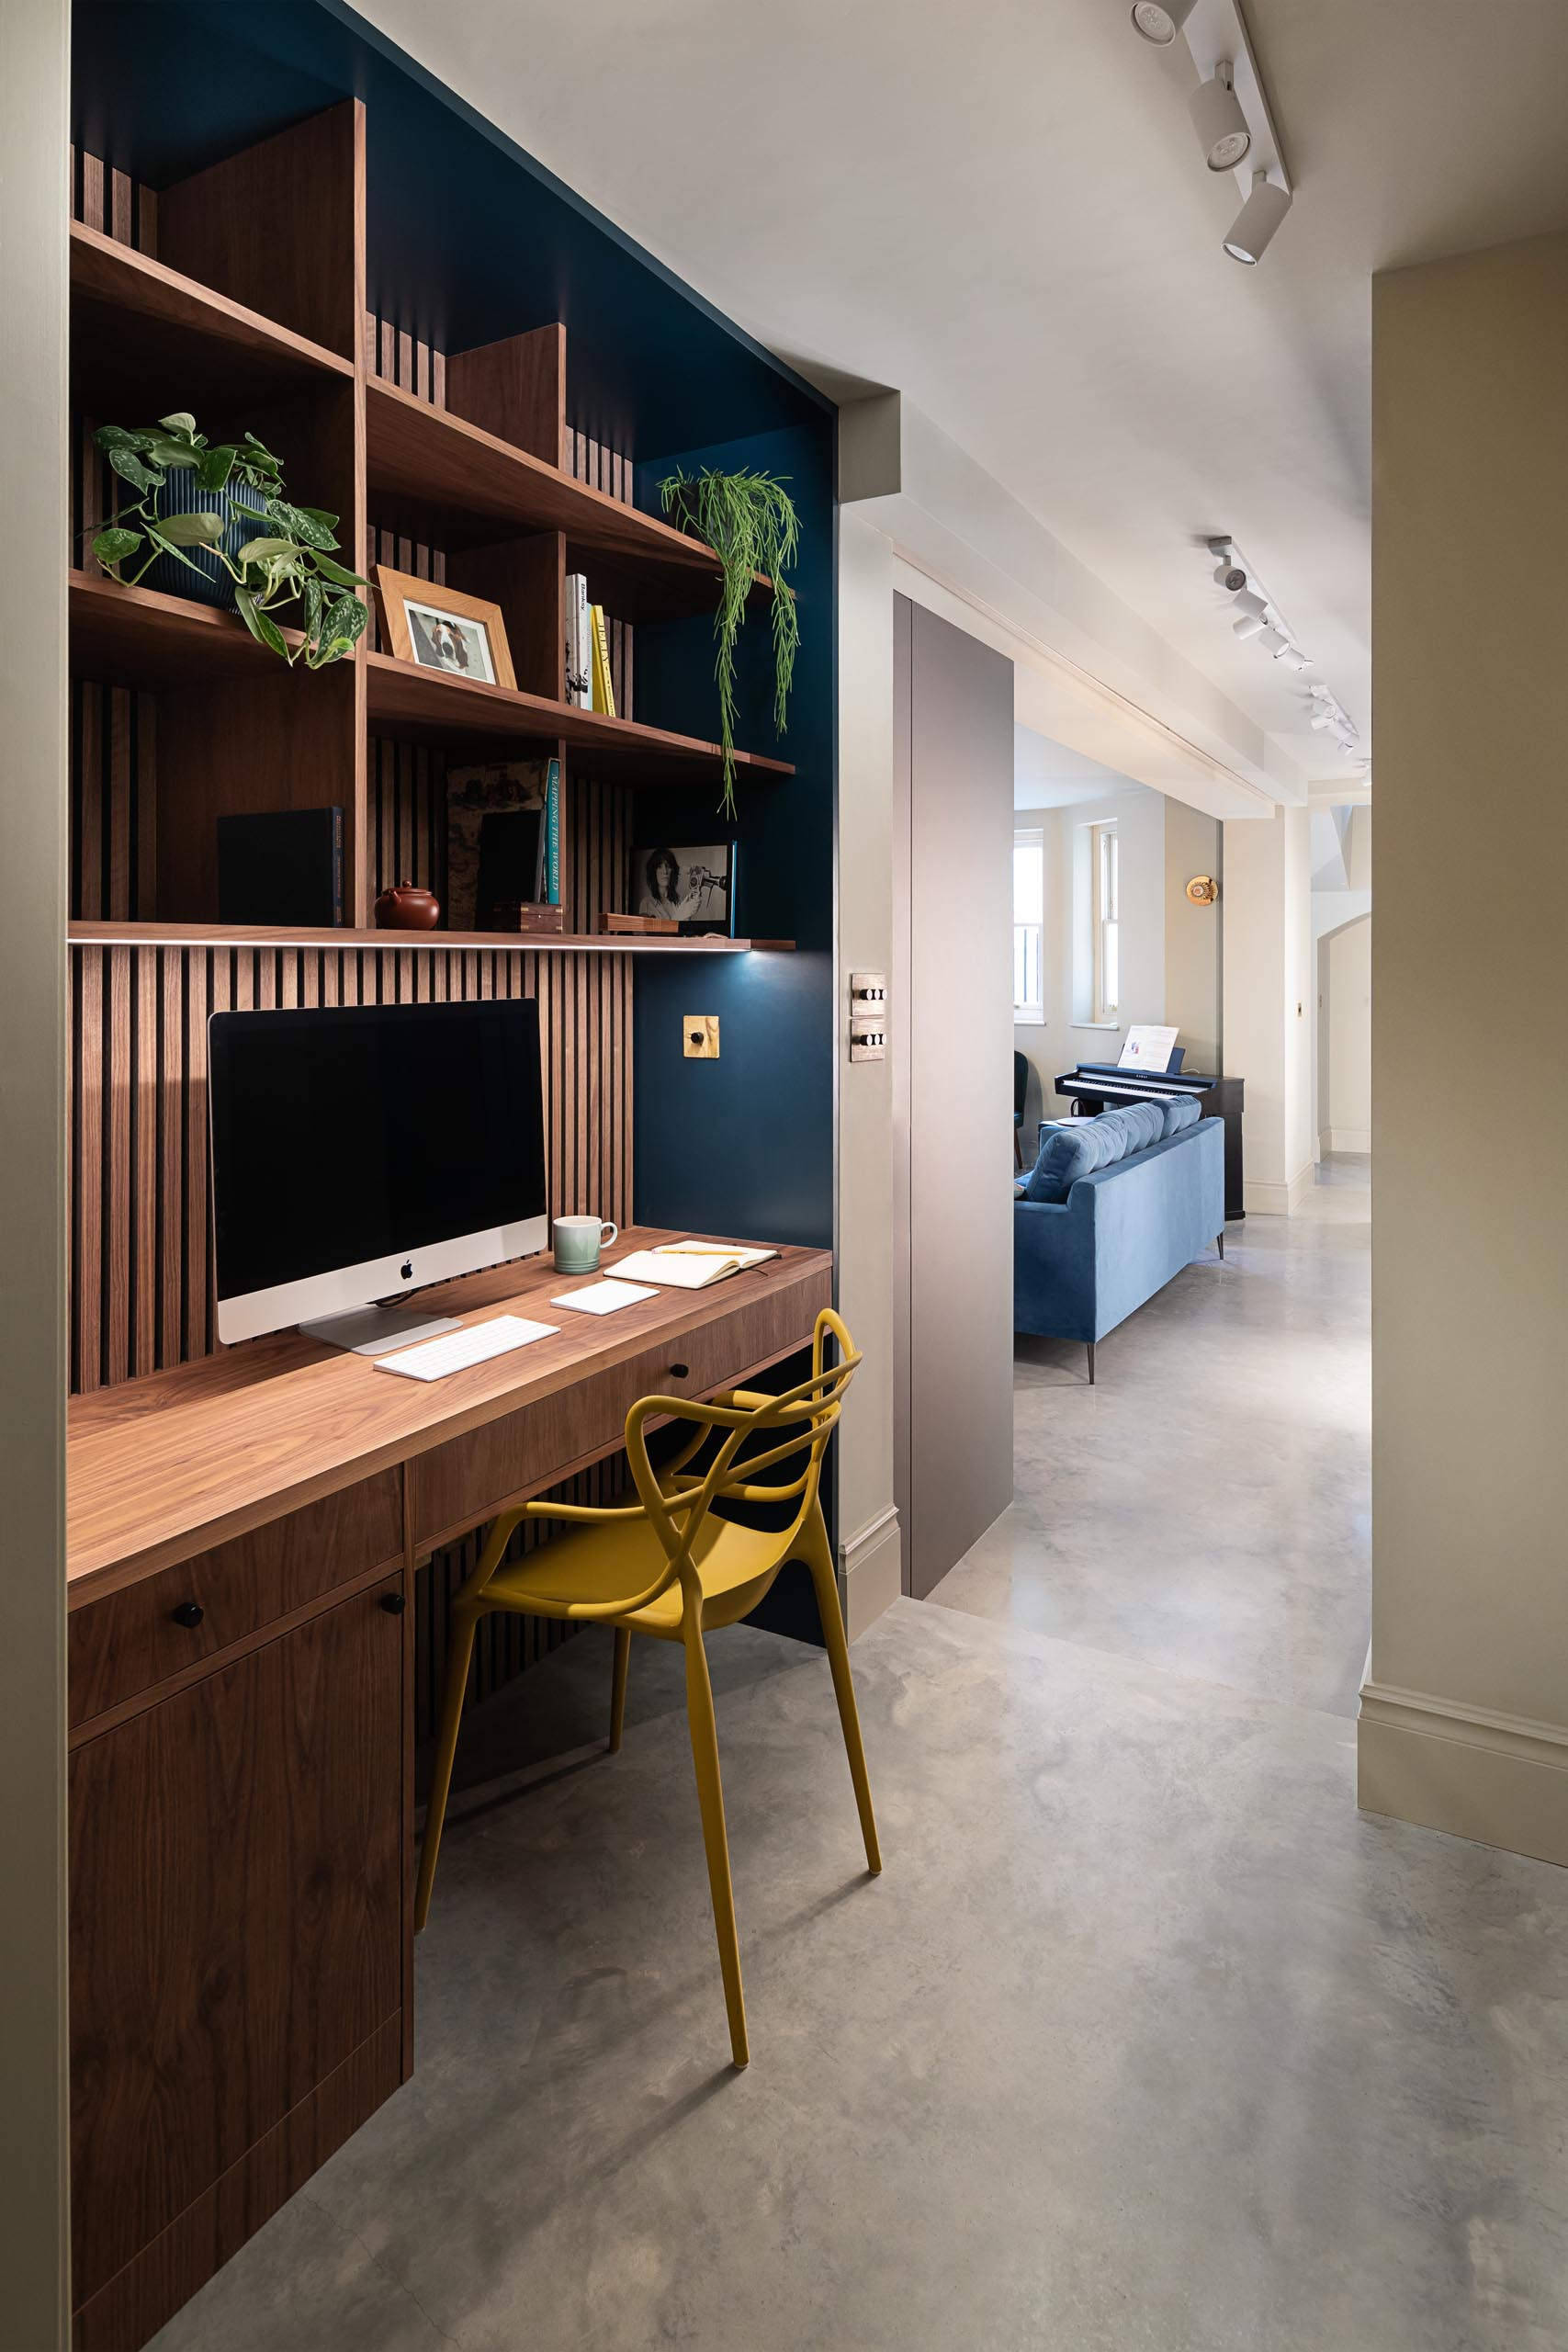 A modern apartment with a custom designed home office in the hallway.